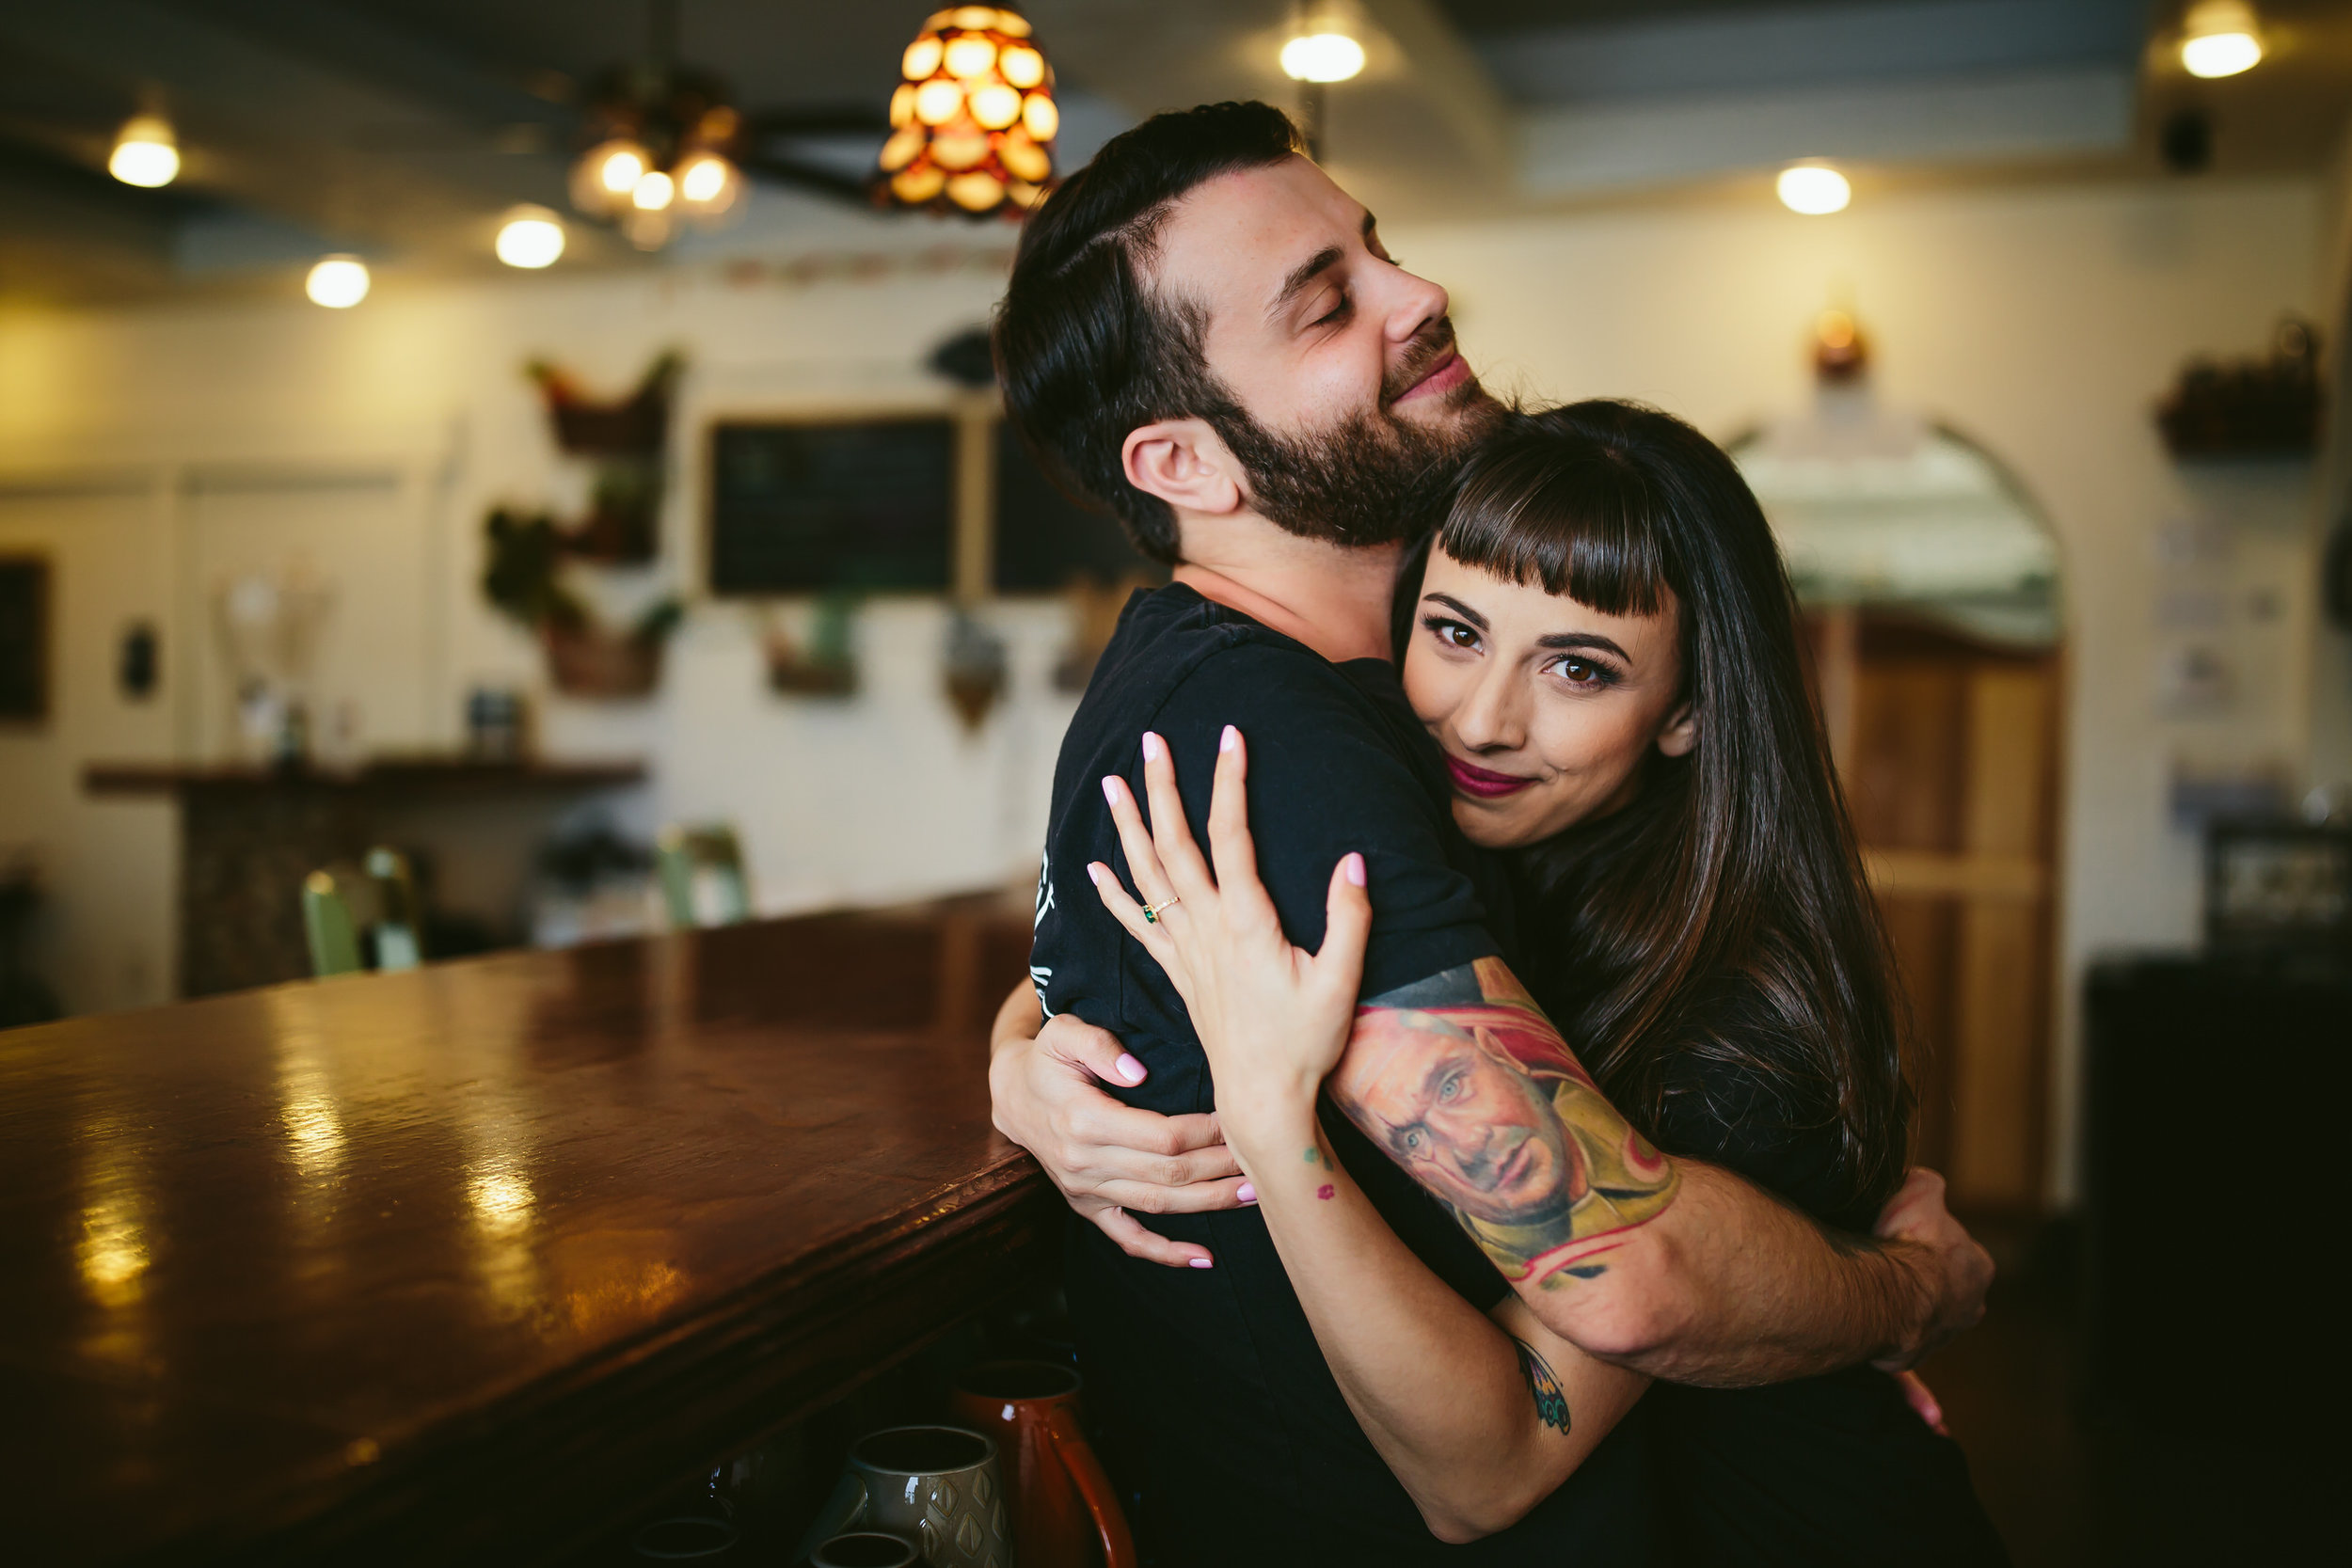 cute-couple-embrace-happy-engagement-wedding-photographer-south-florida-tiny-house-photo.jpg